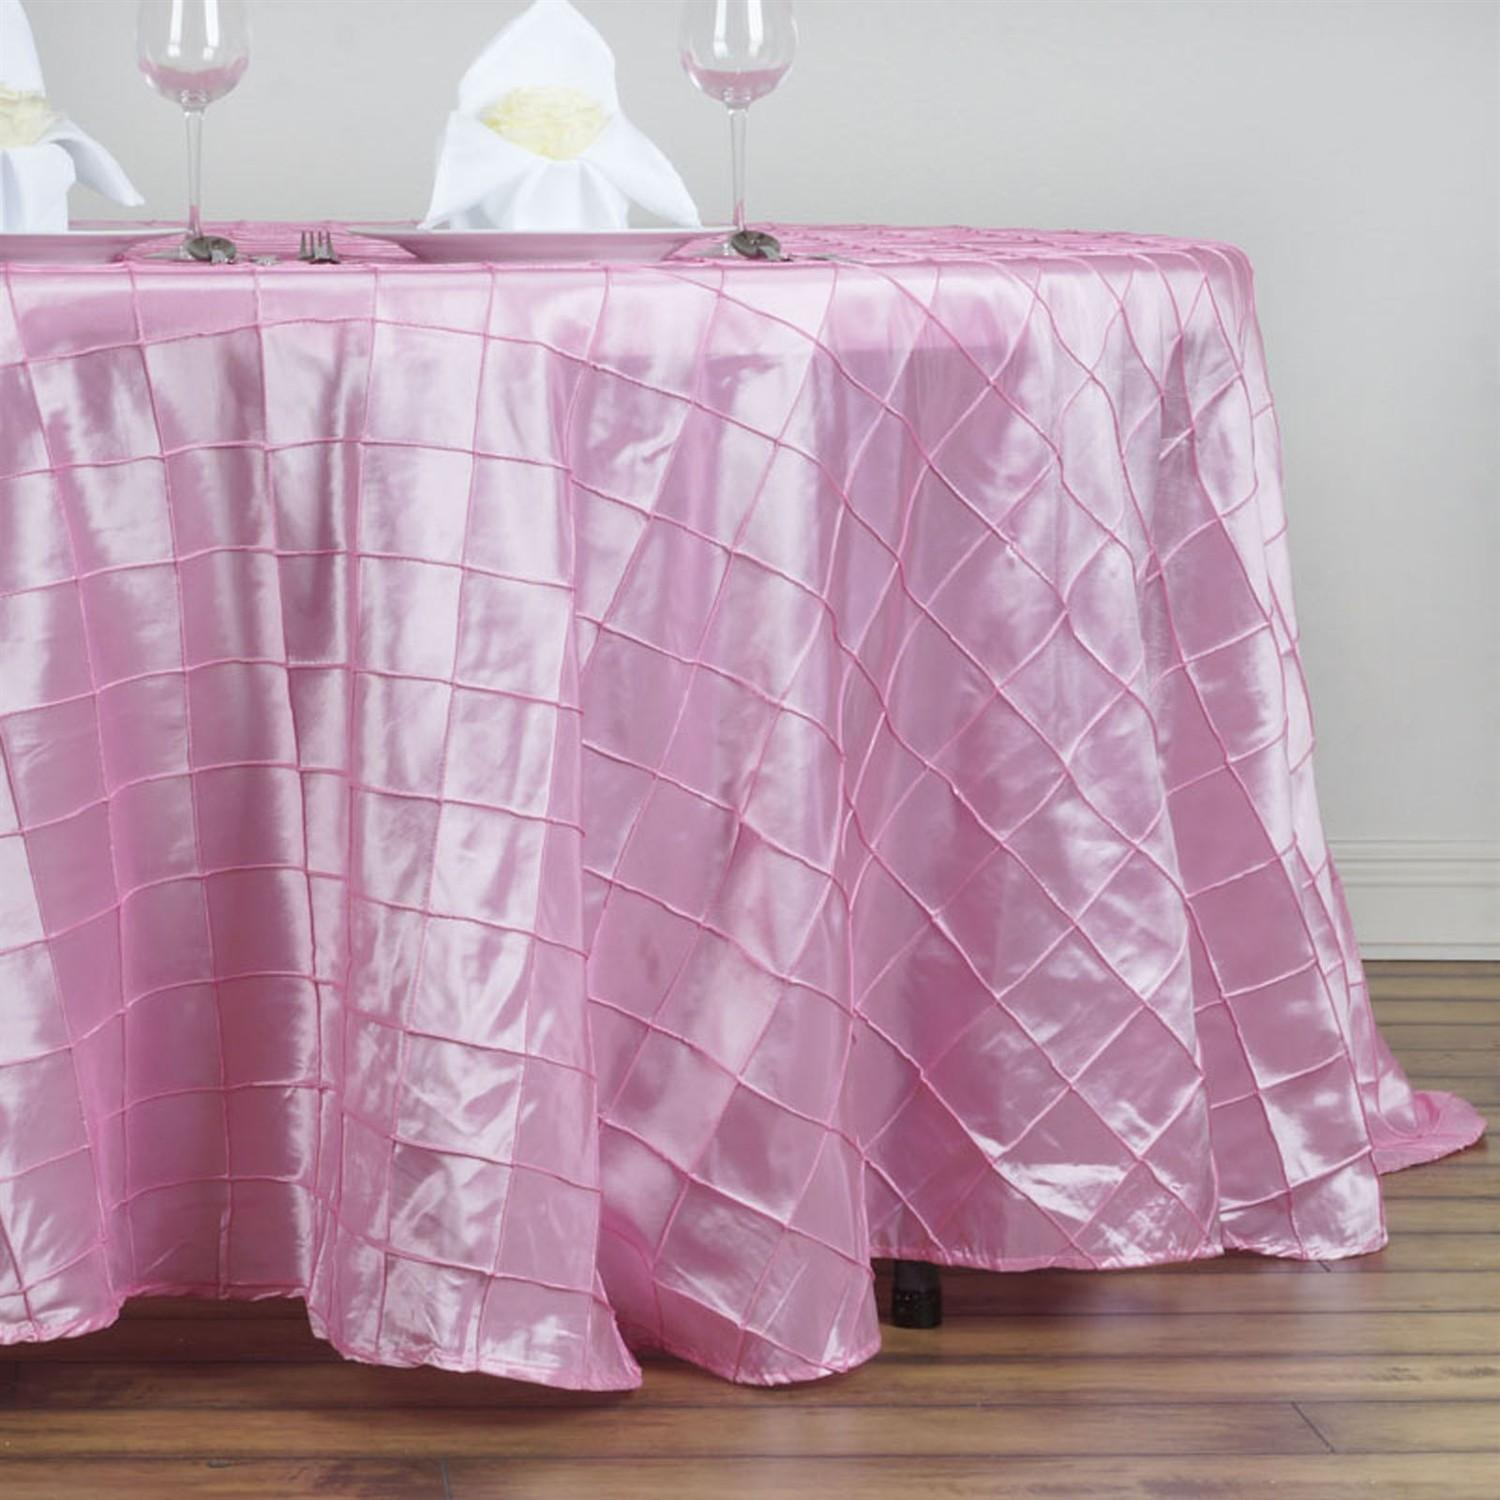 132 Pintuck Round Tablecloth Wedding Party Banquet